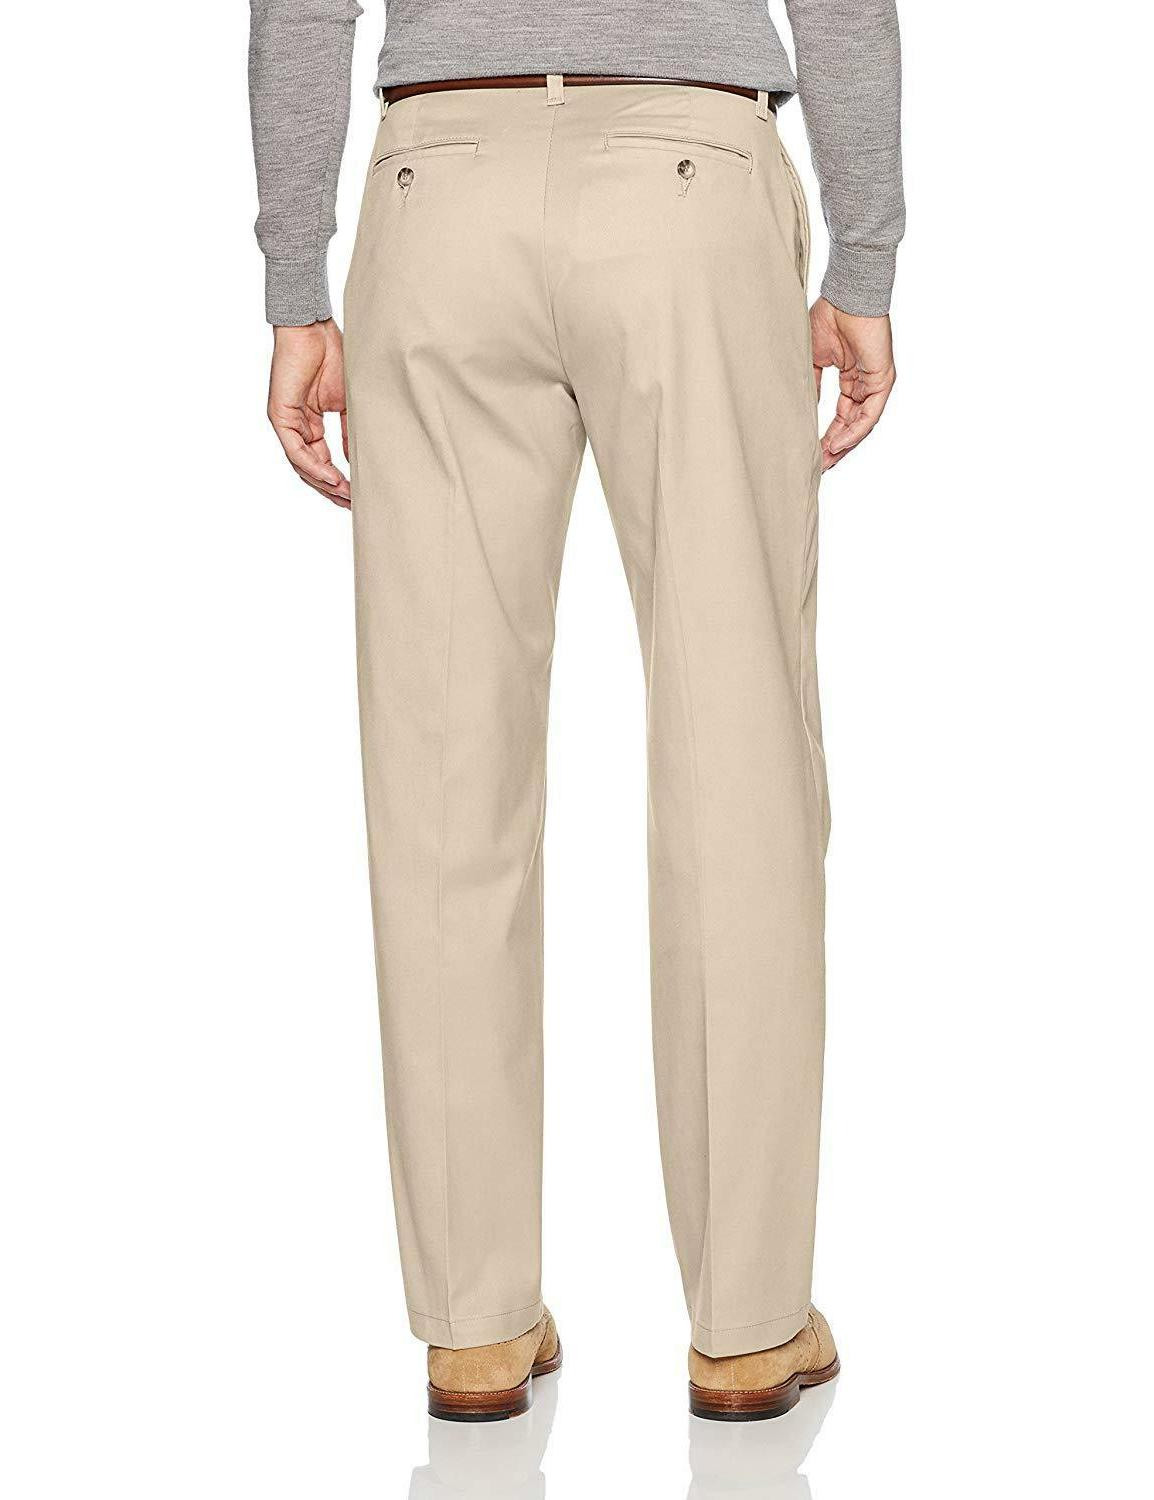 LEE Men's Stretch Relaxed Flat Front Pant